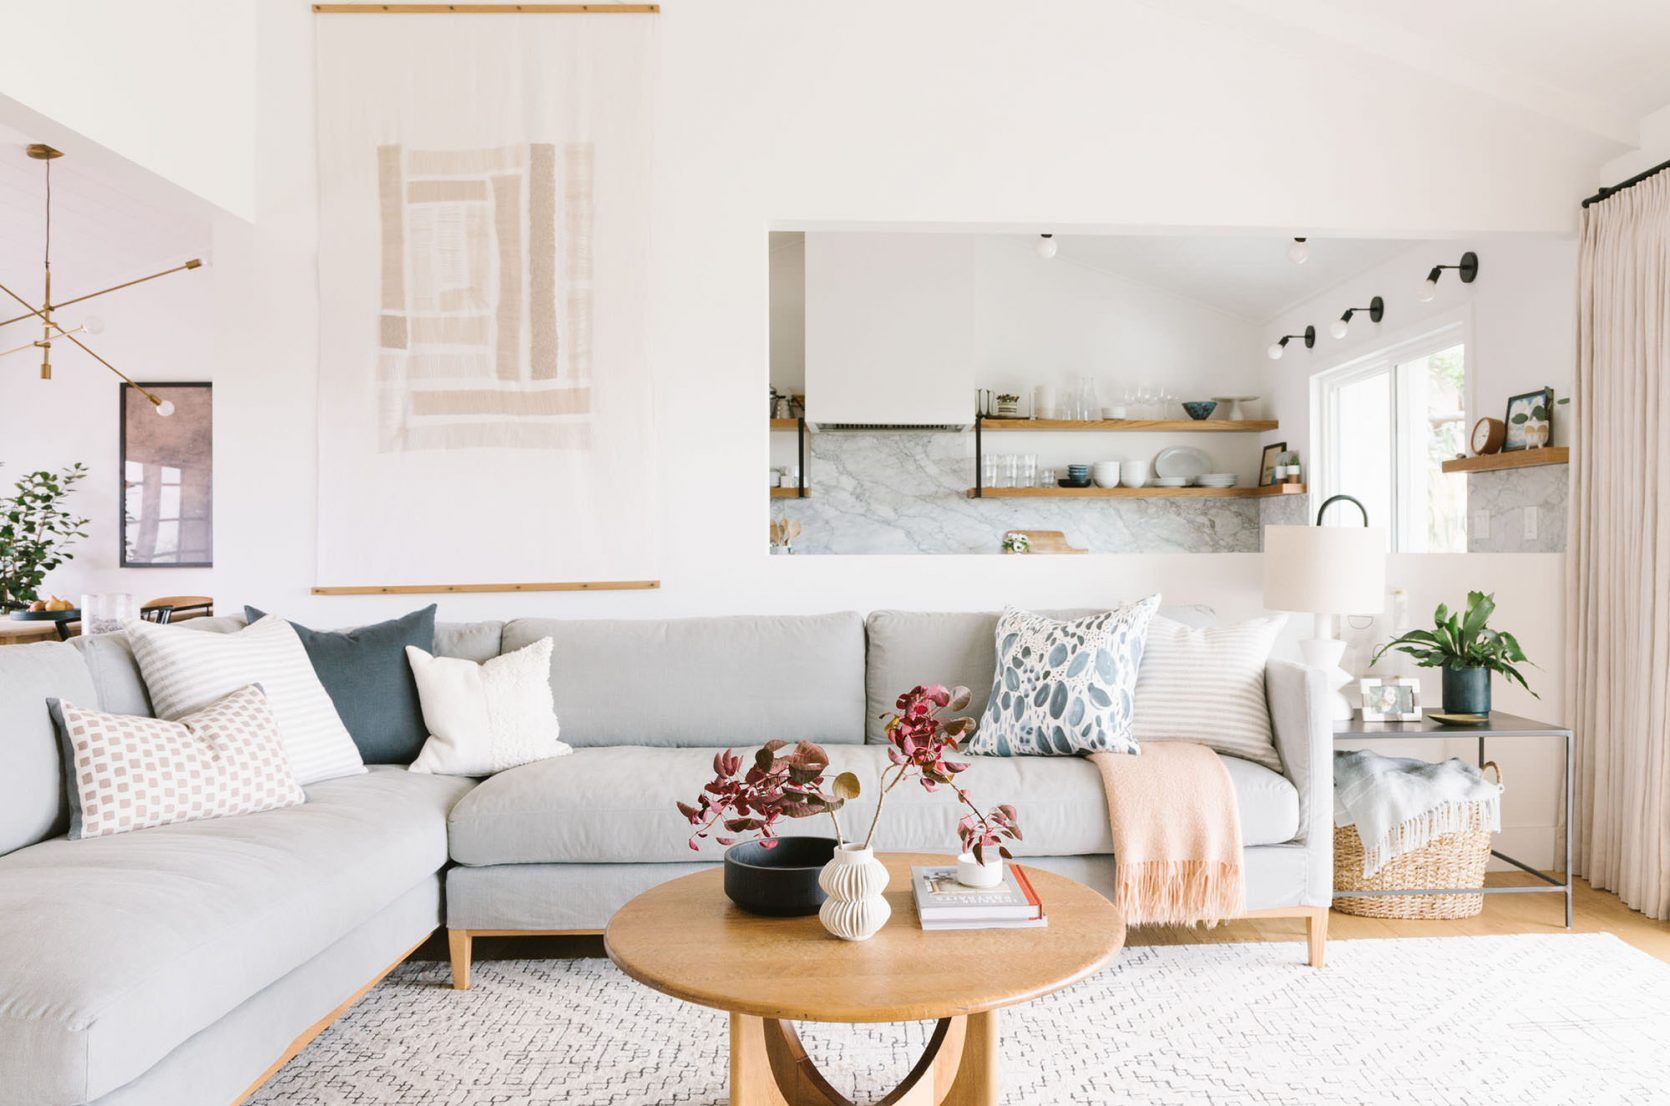 7 Key Things To Remember When Decorating With Neutrals Relaxing Living Room Living Room Decor Emily Henderson Living Room #relaxing #living #room #ideas